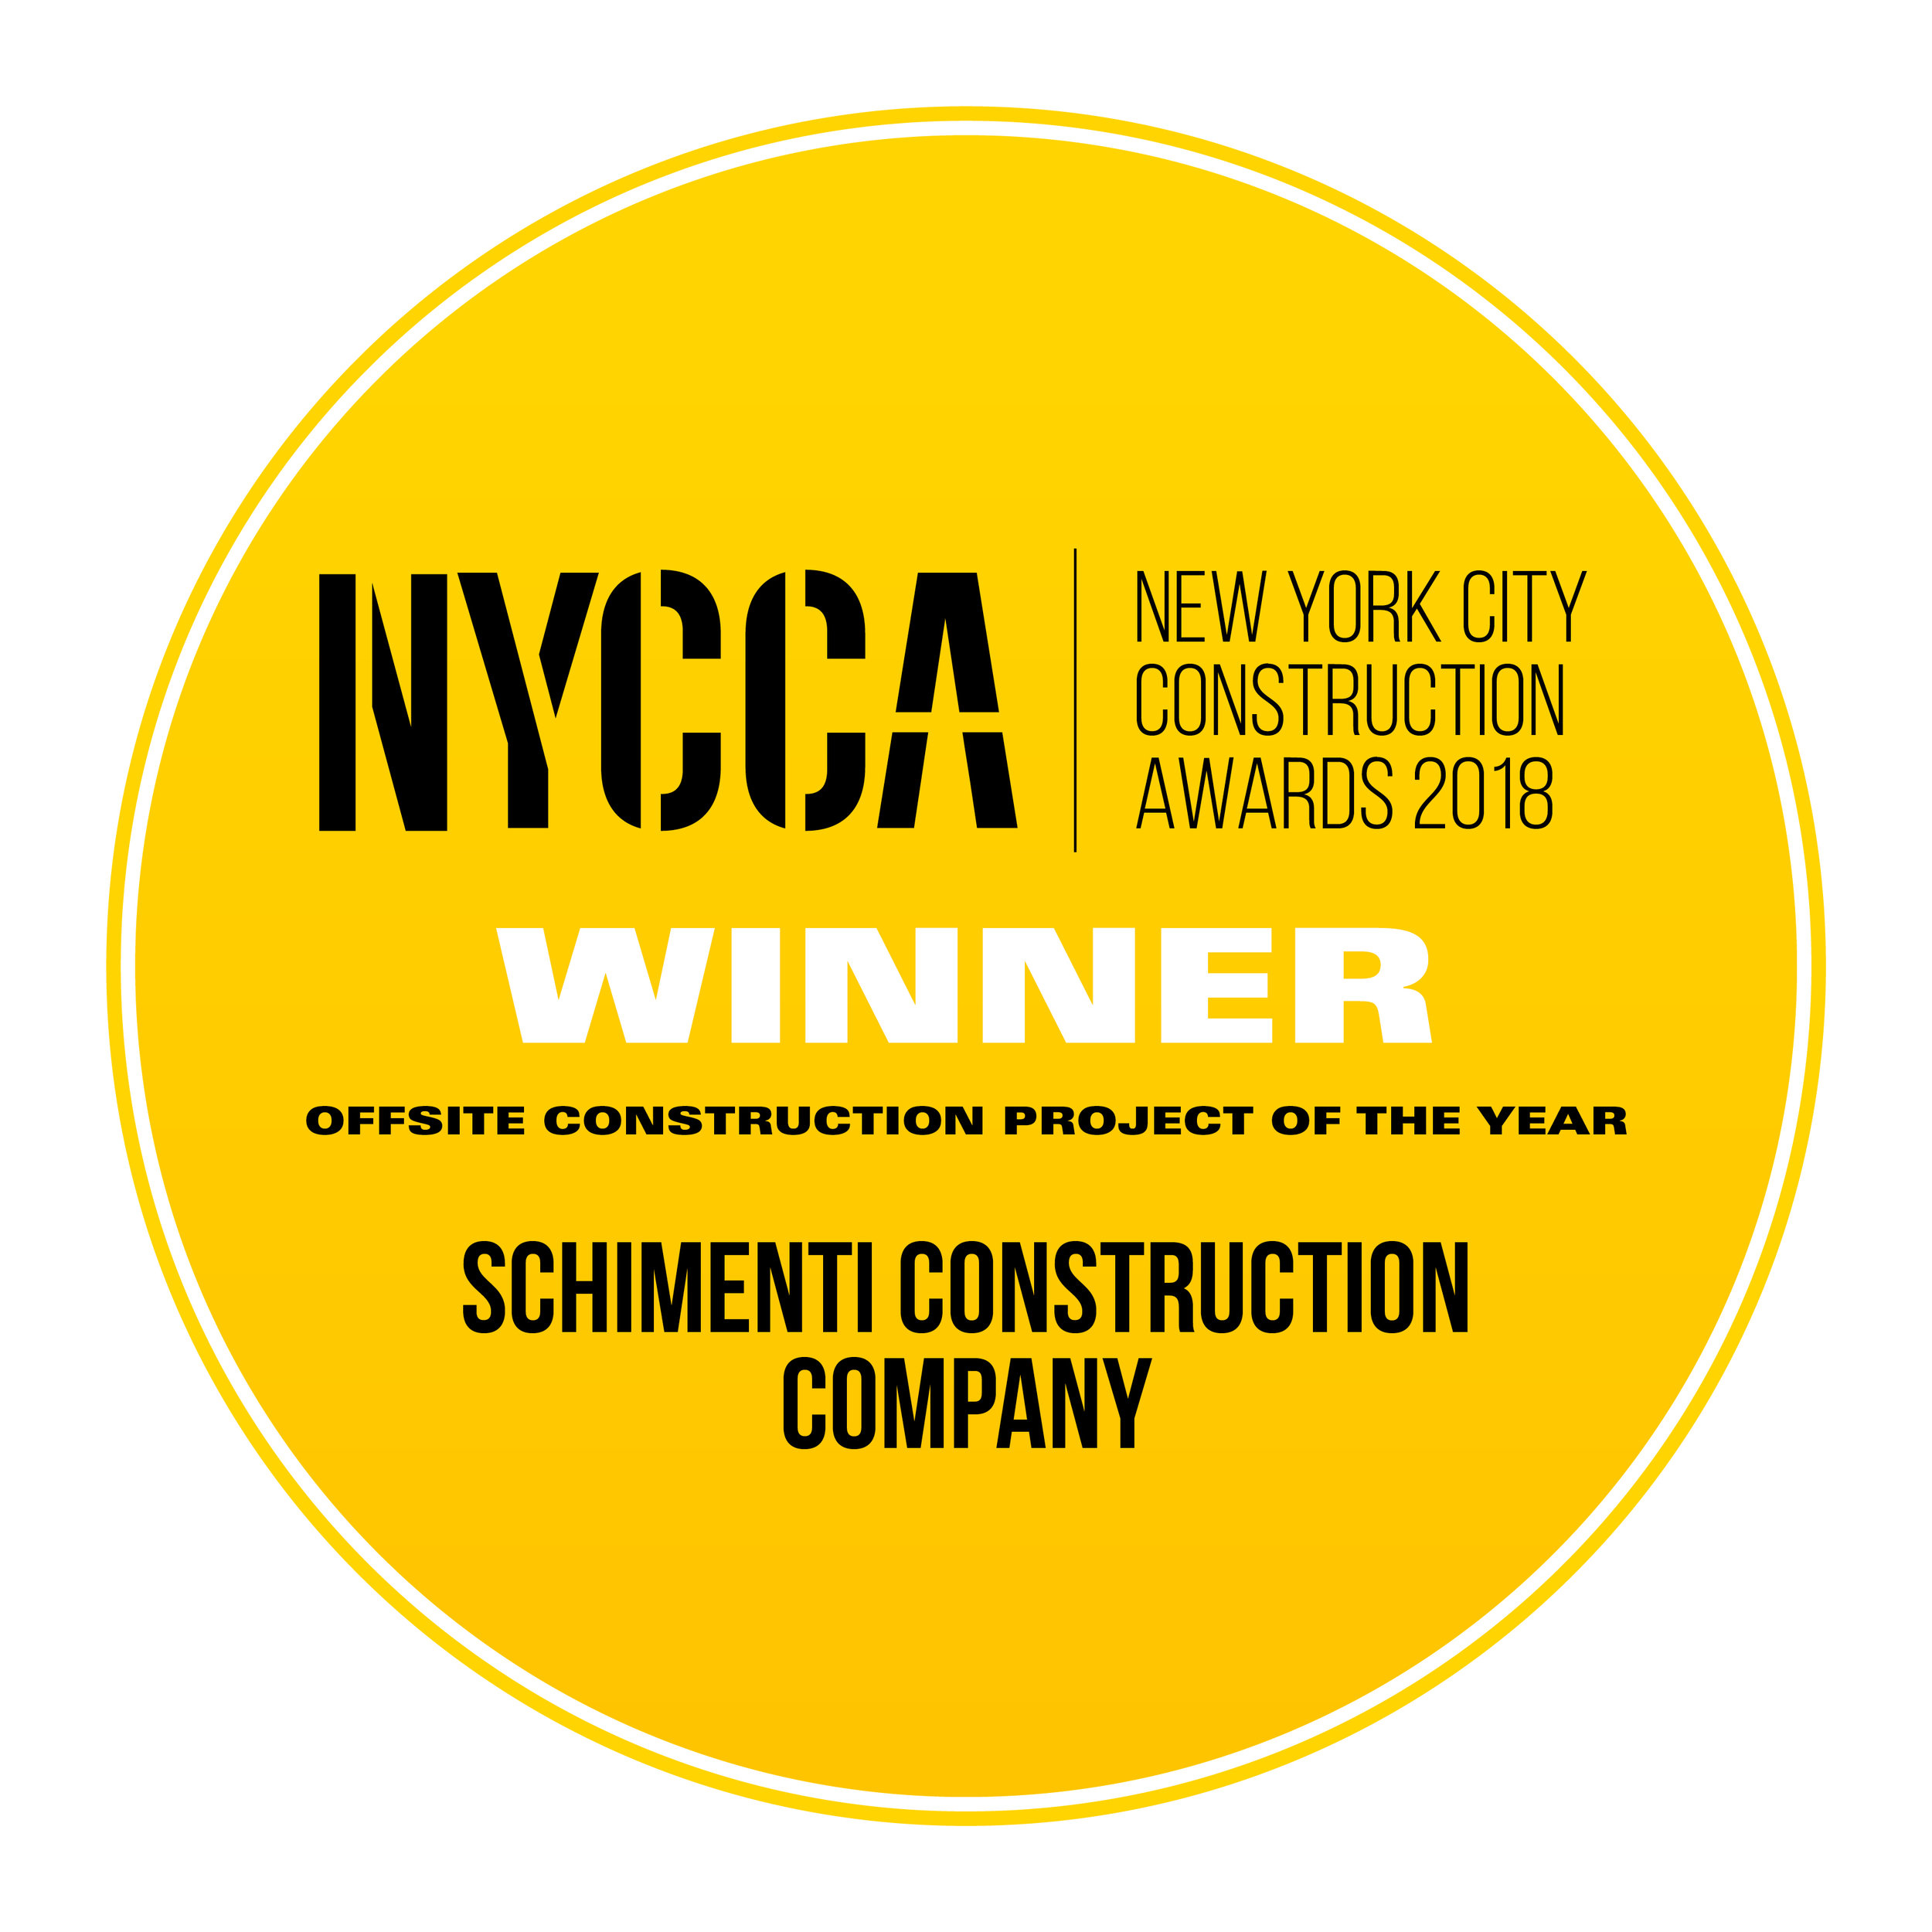 Schimenti Construction Company - Offsite Construction Project of the Year